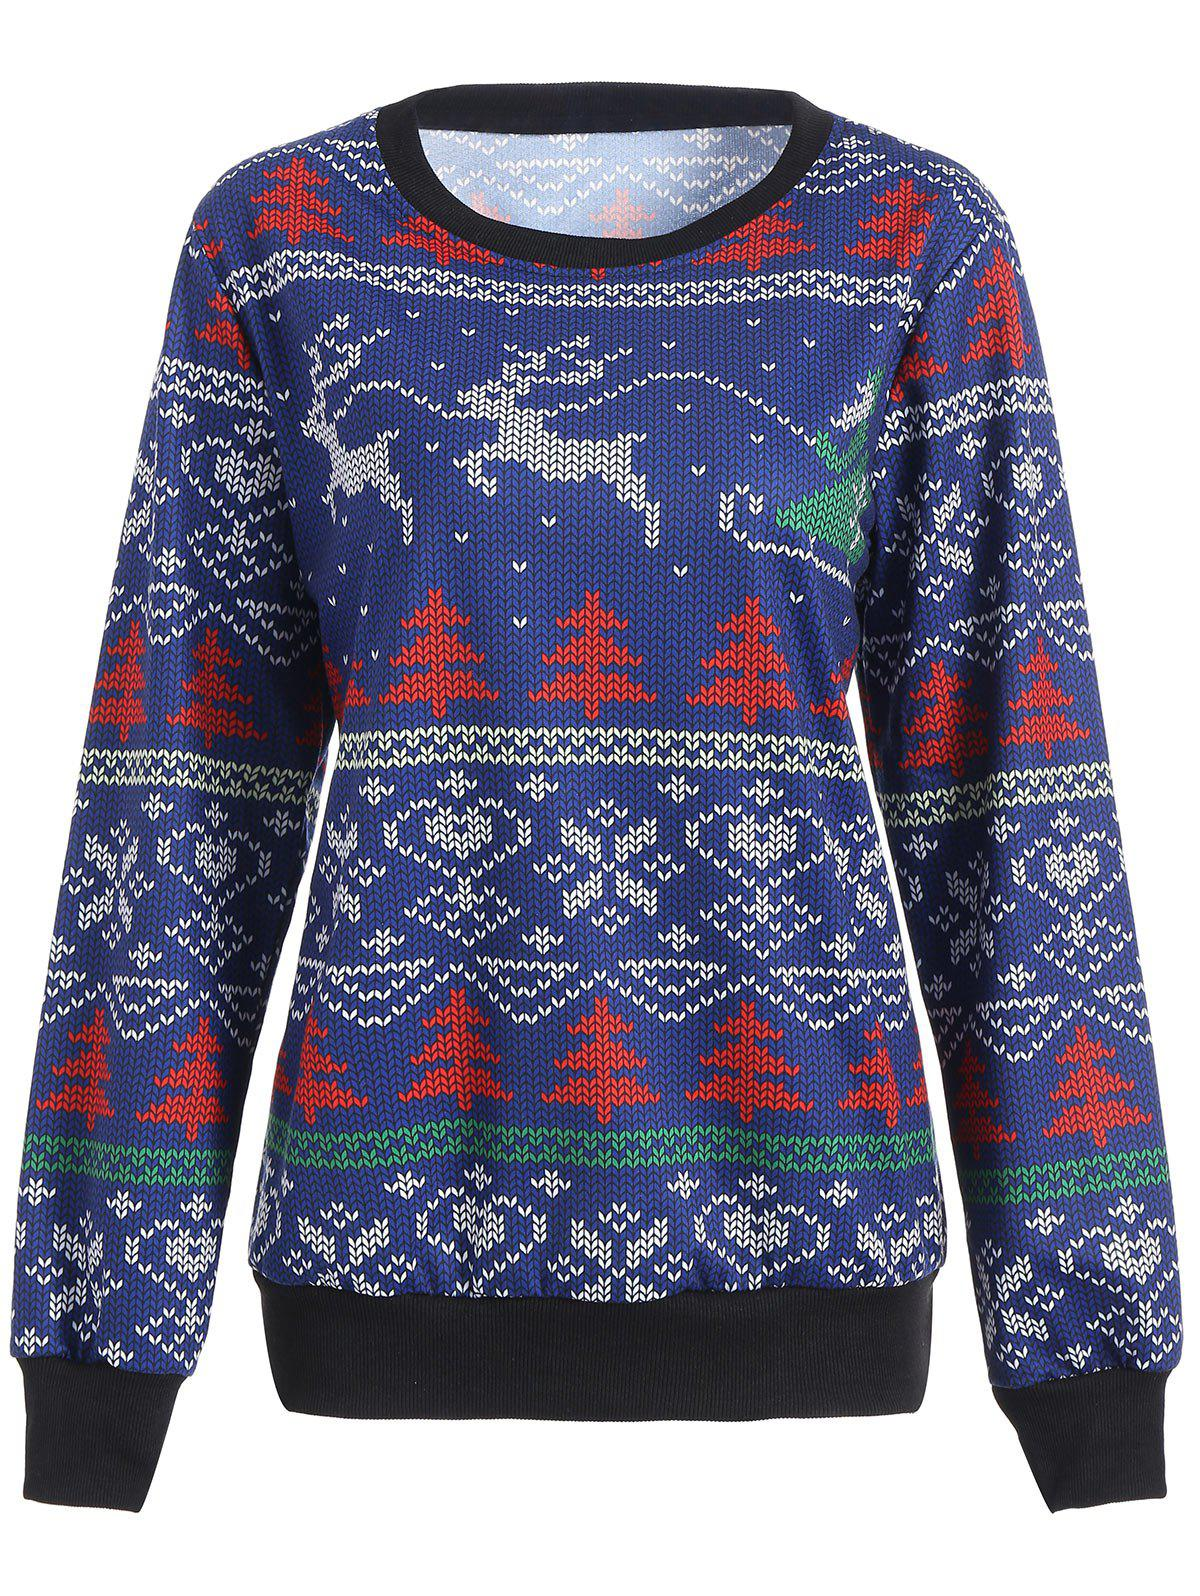 Elk Tree Printed Crew Neck Christmas Sweatshirt christmas elk printed crew neck sweatshirt